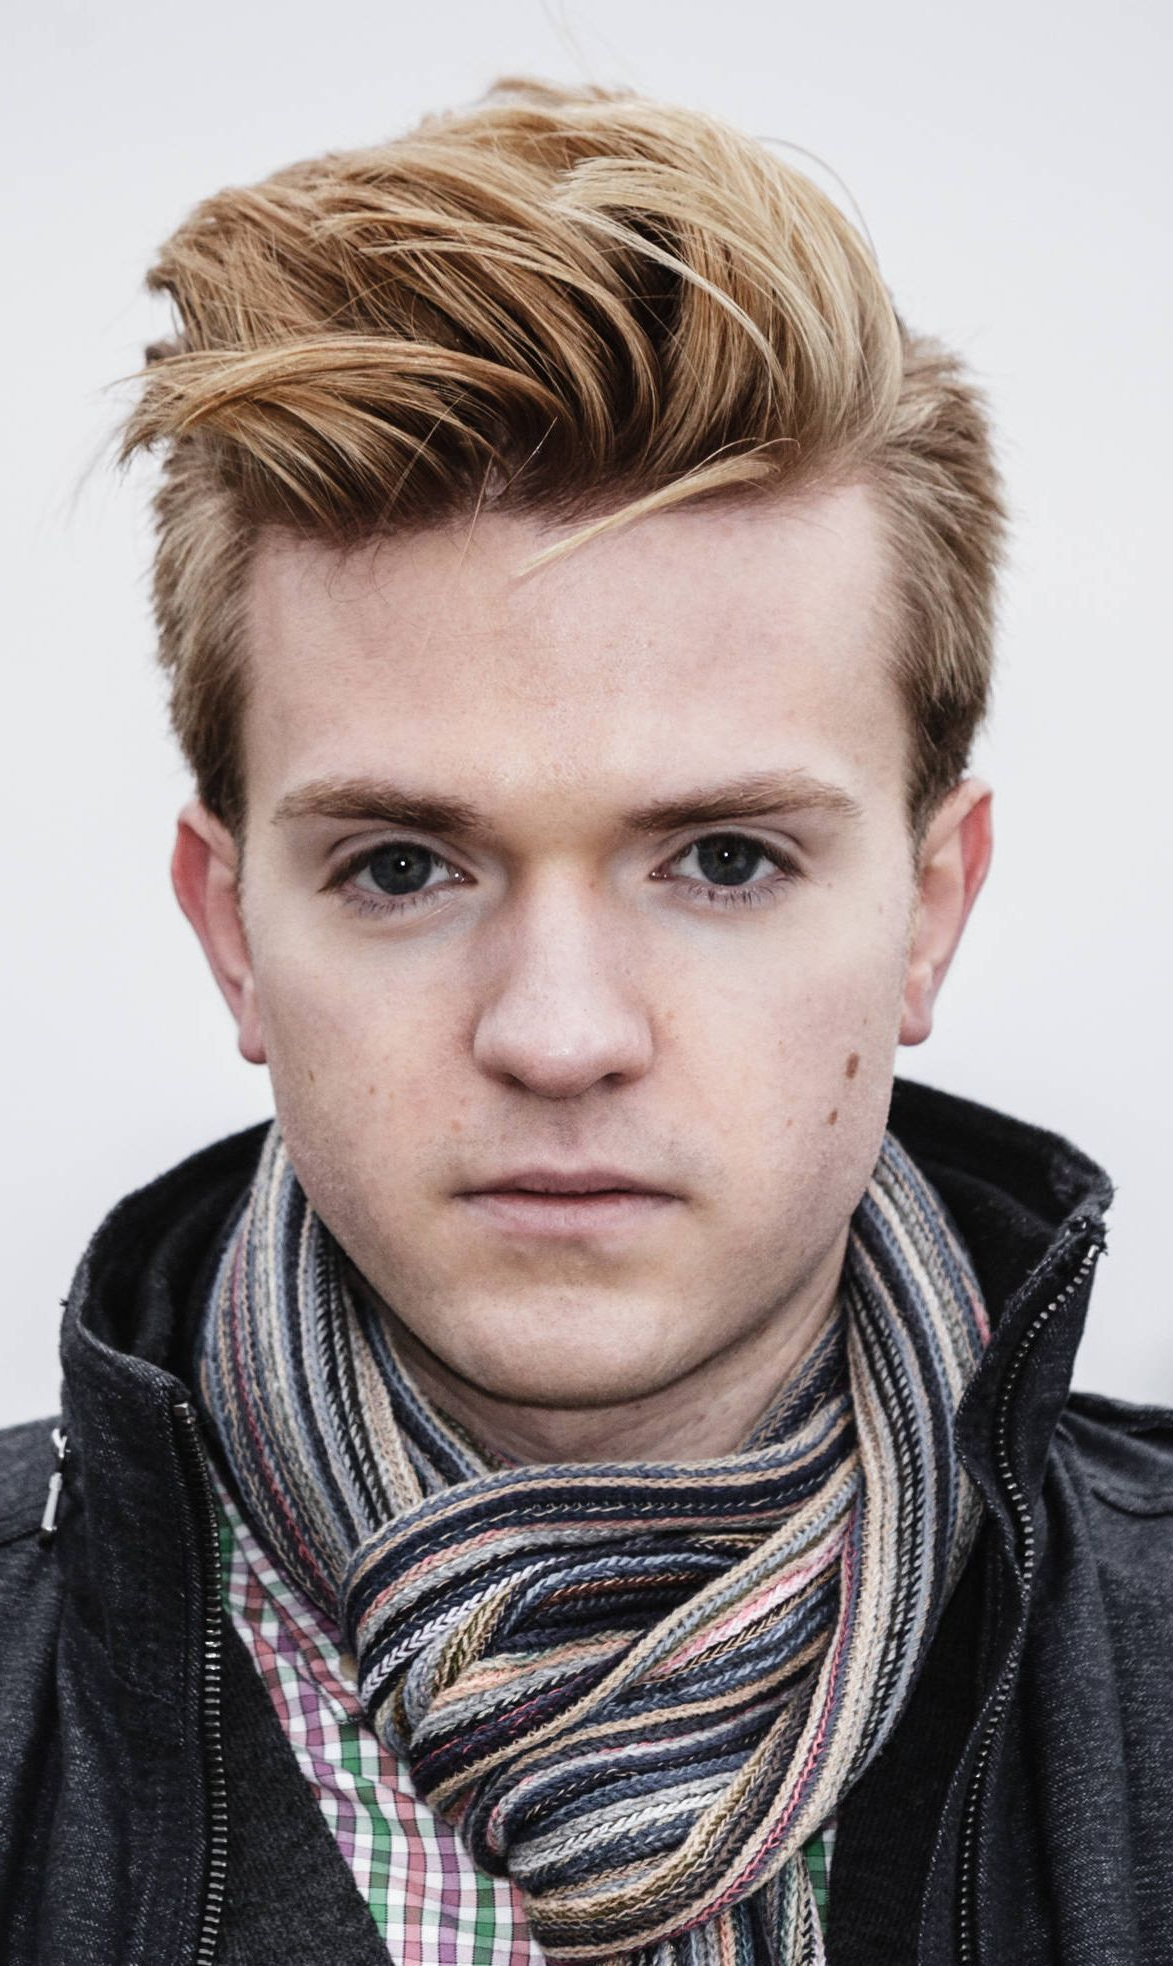 Best 50 Blonde Hairstyles For Men To Try In 2019   Haircuts For Brushed Back Hairstyles For Round Face Types (View 12 of 20)